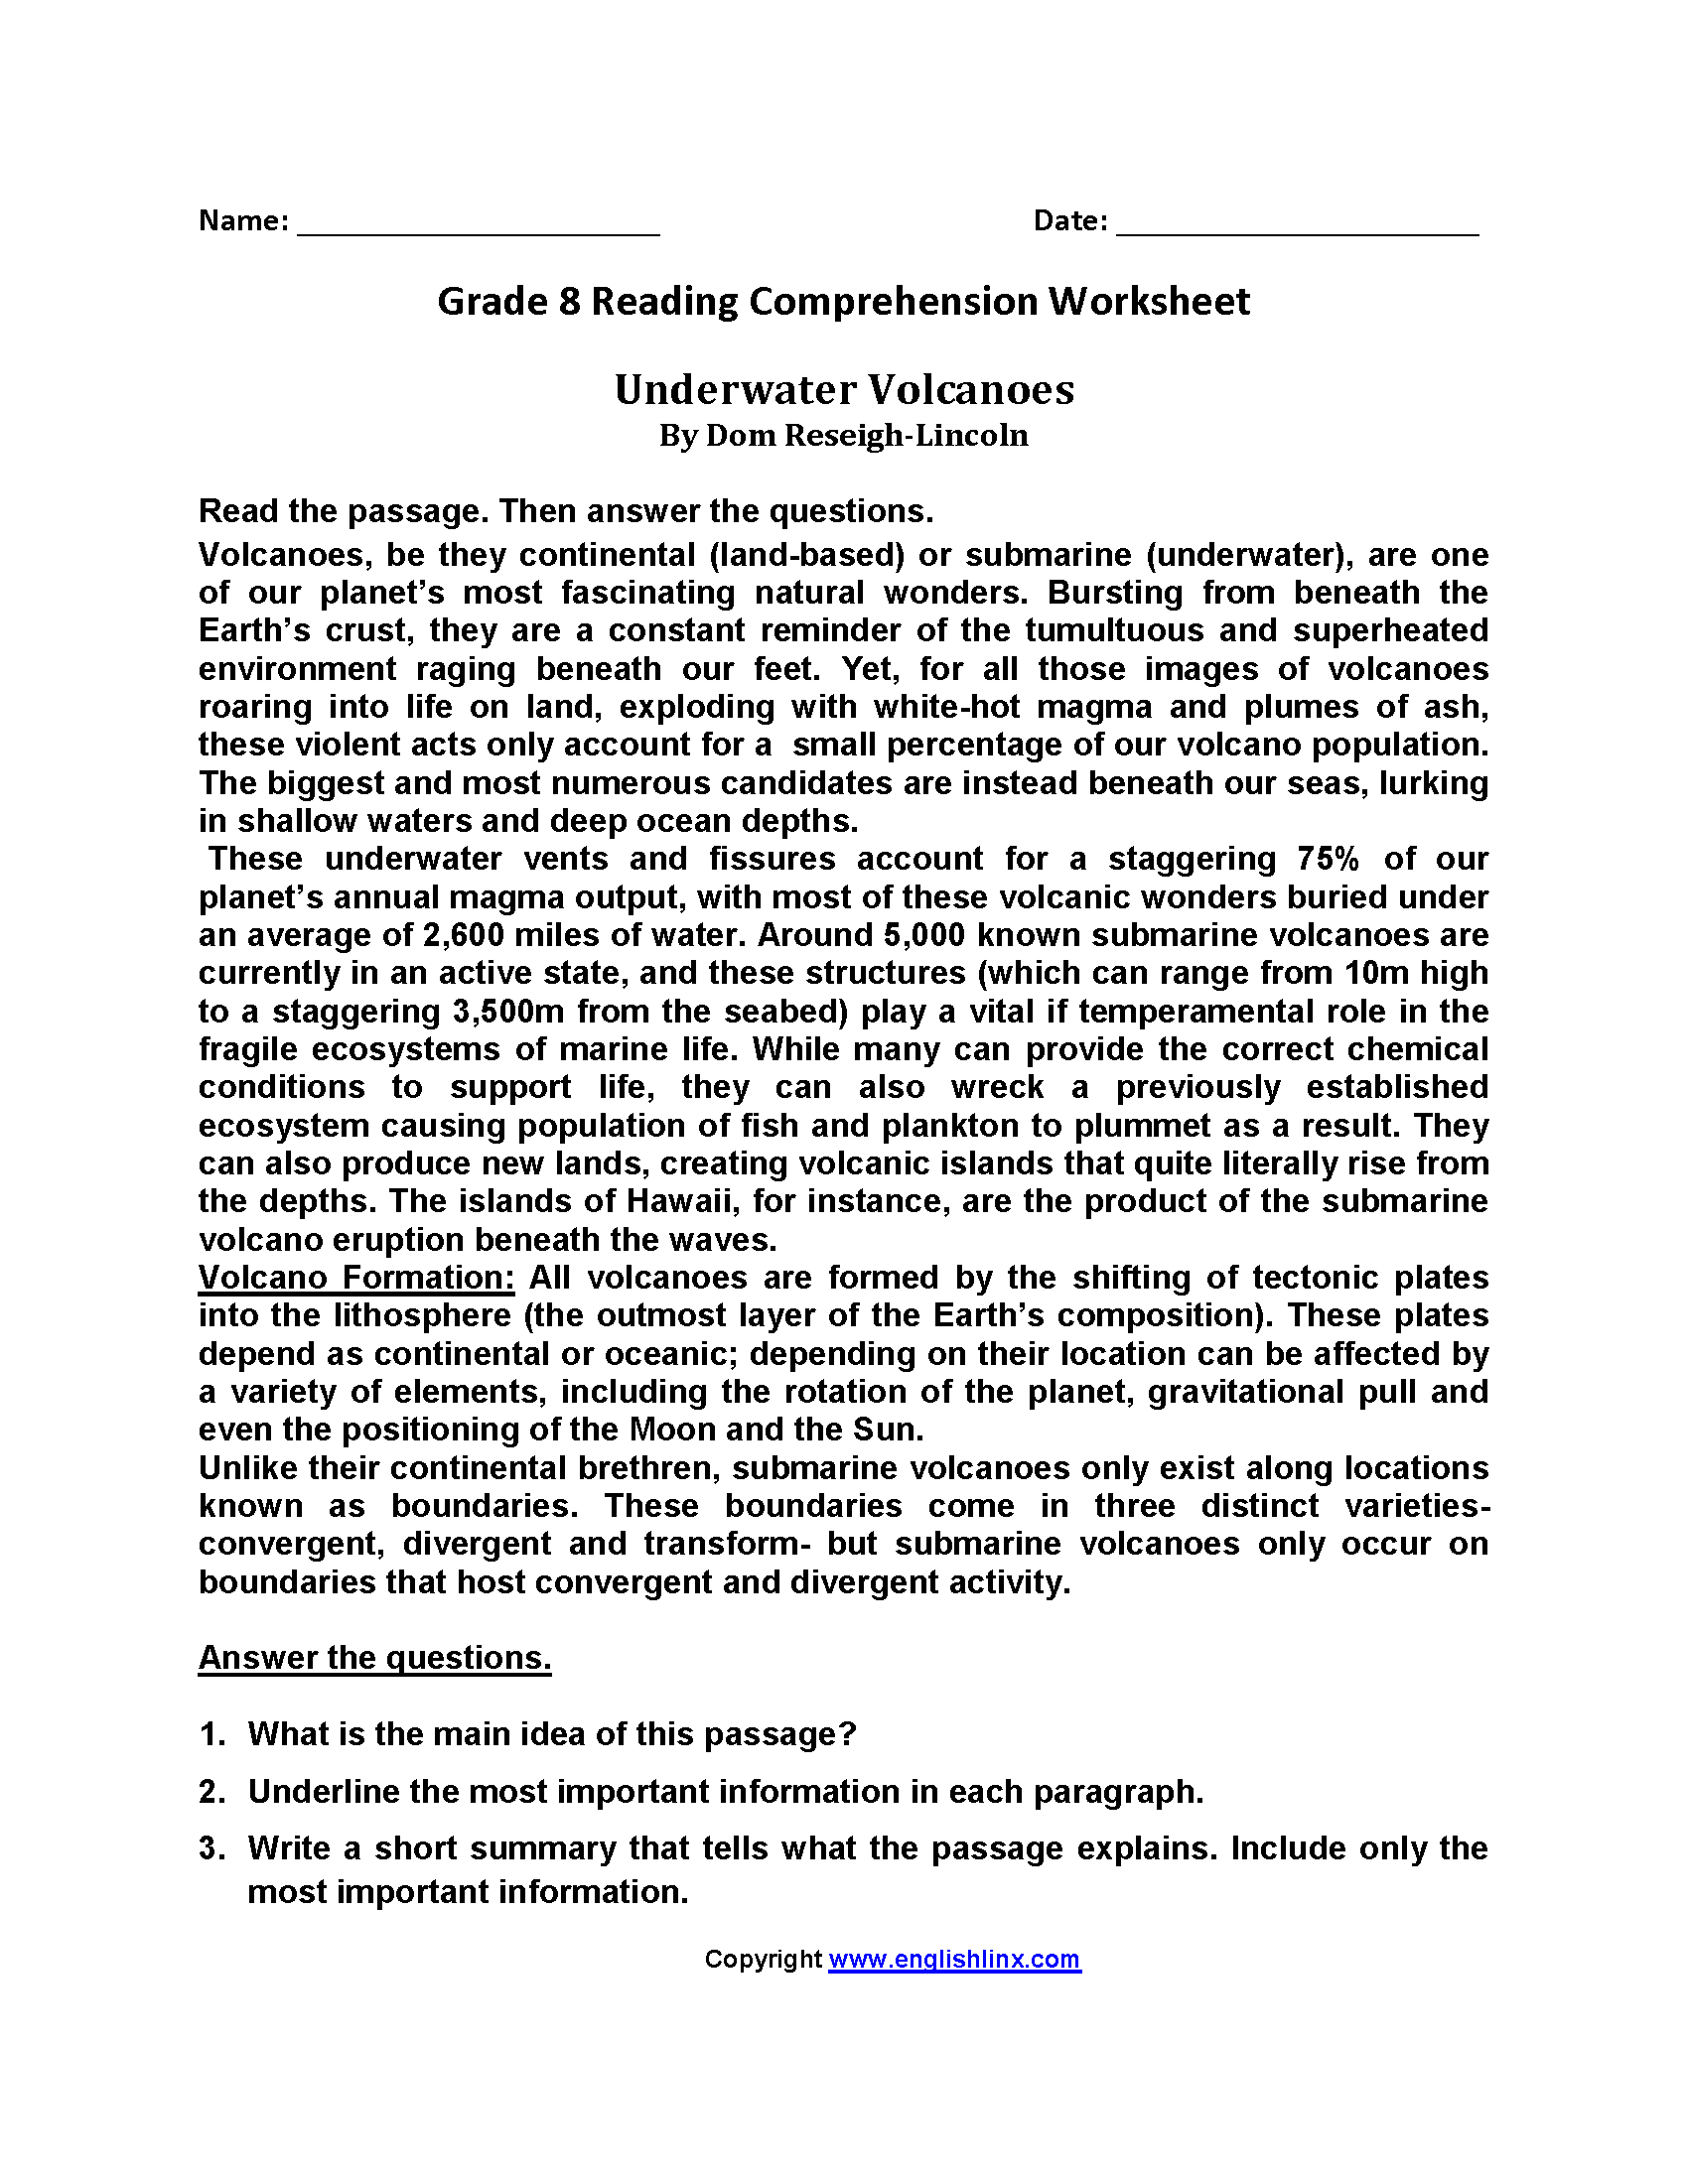 Grade 7 Reading Comprehension Worksheets Pdf Cbse